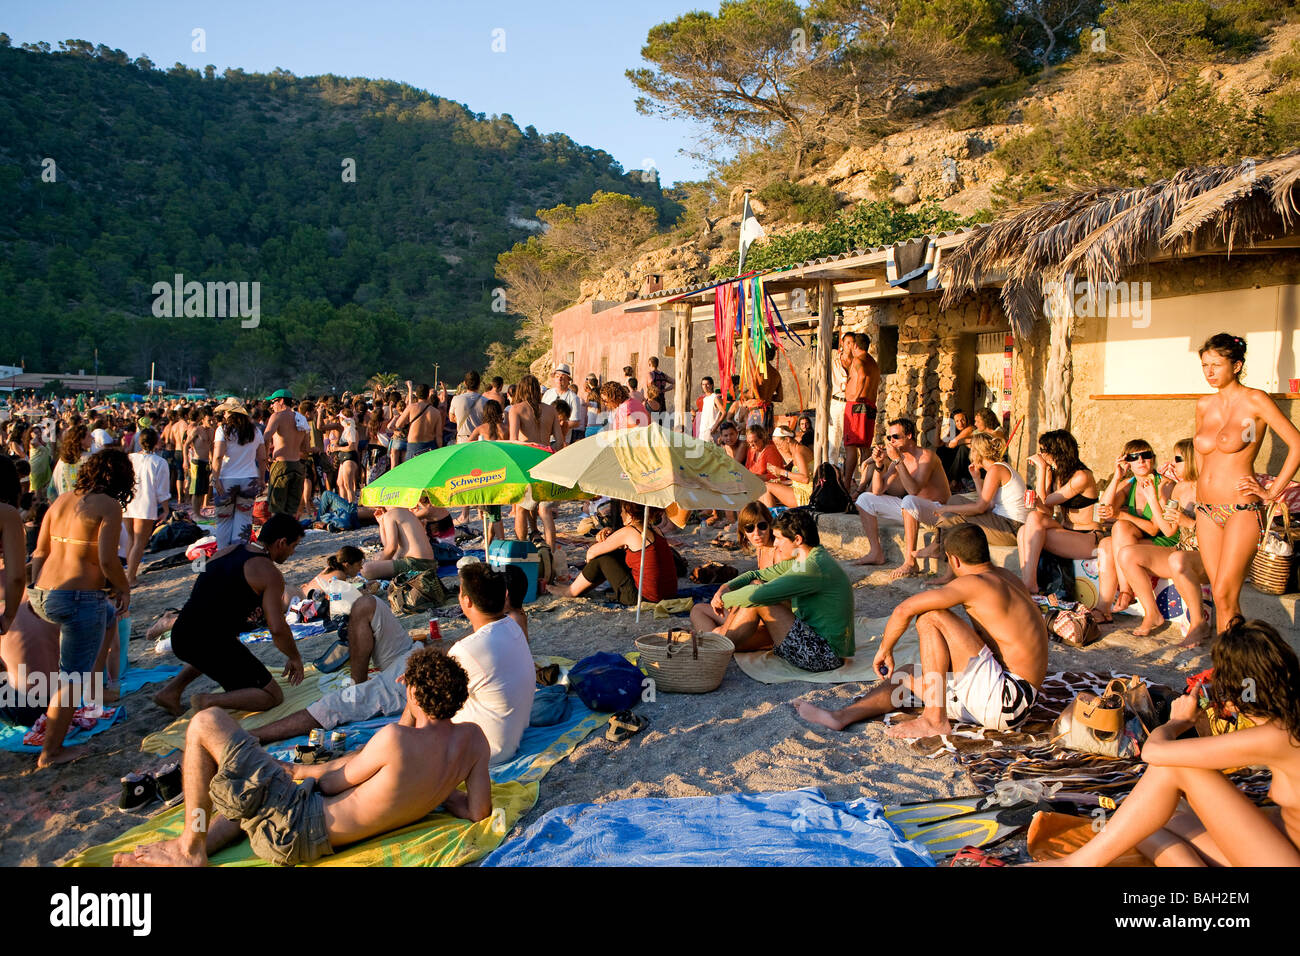 Benniras Beach Stock Photos   Benniras Beach Stock Images   Alamy Spain  Balearic Islands  Ibiza island  Benniras beach  during summer  drum  concerts